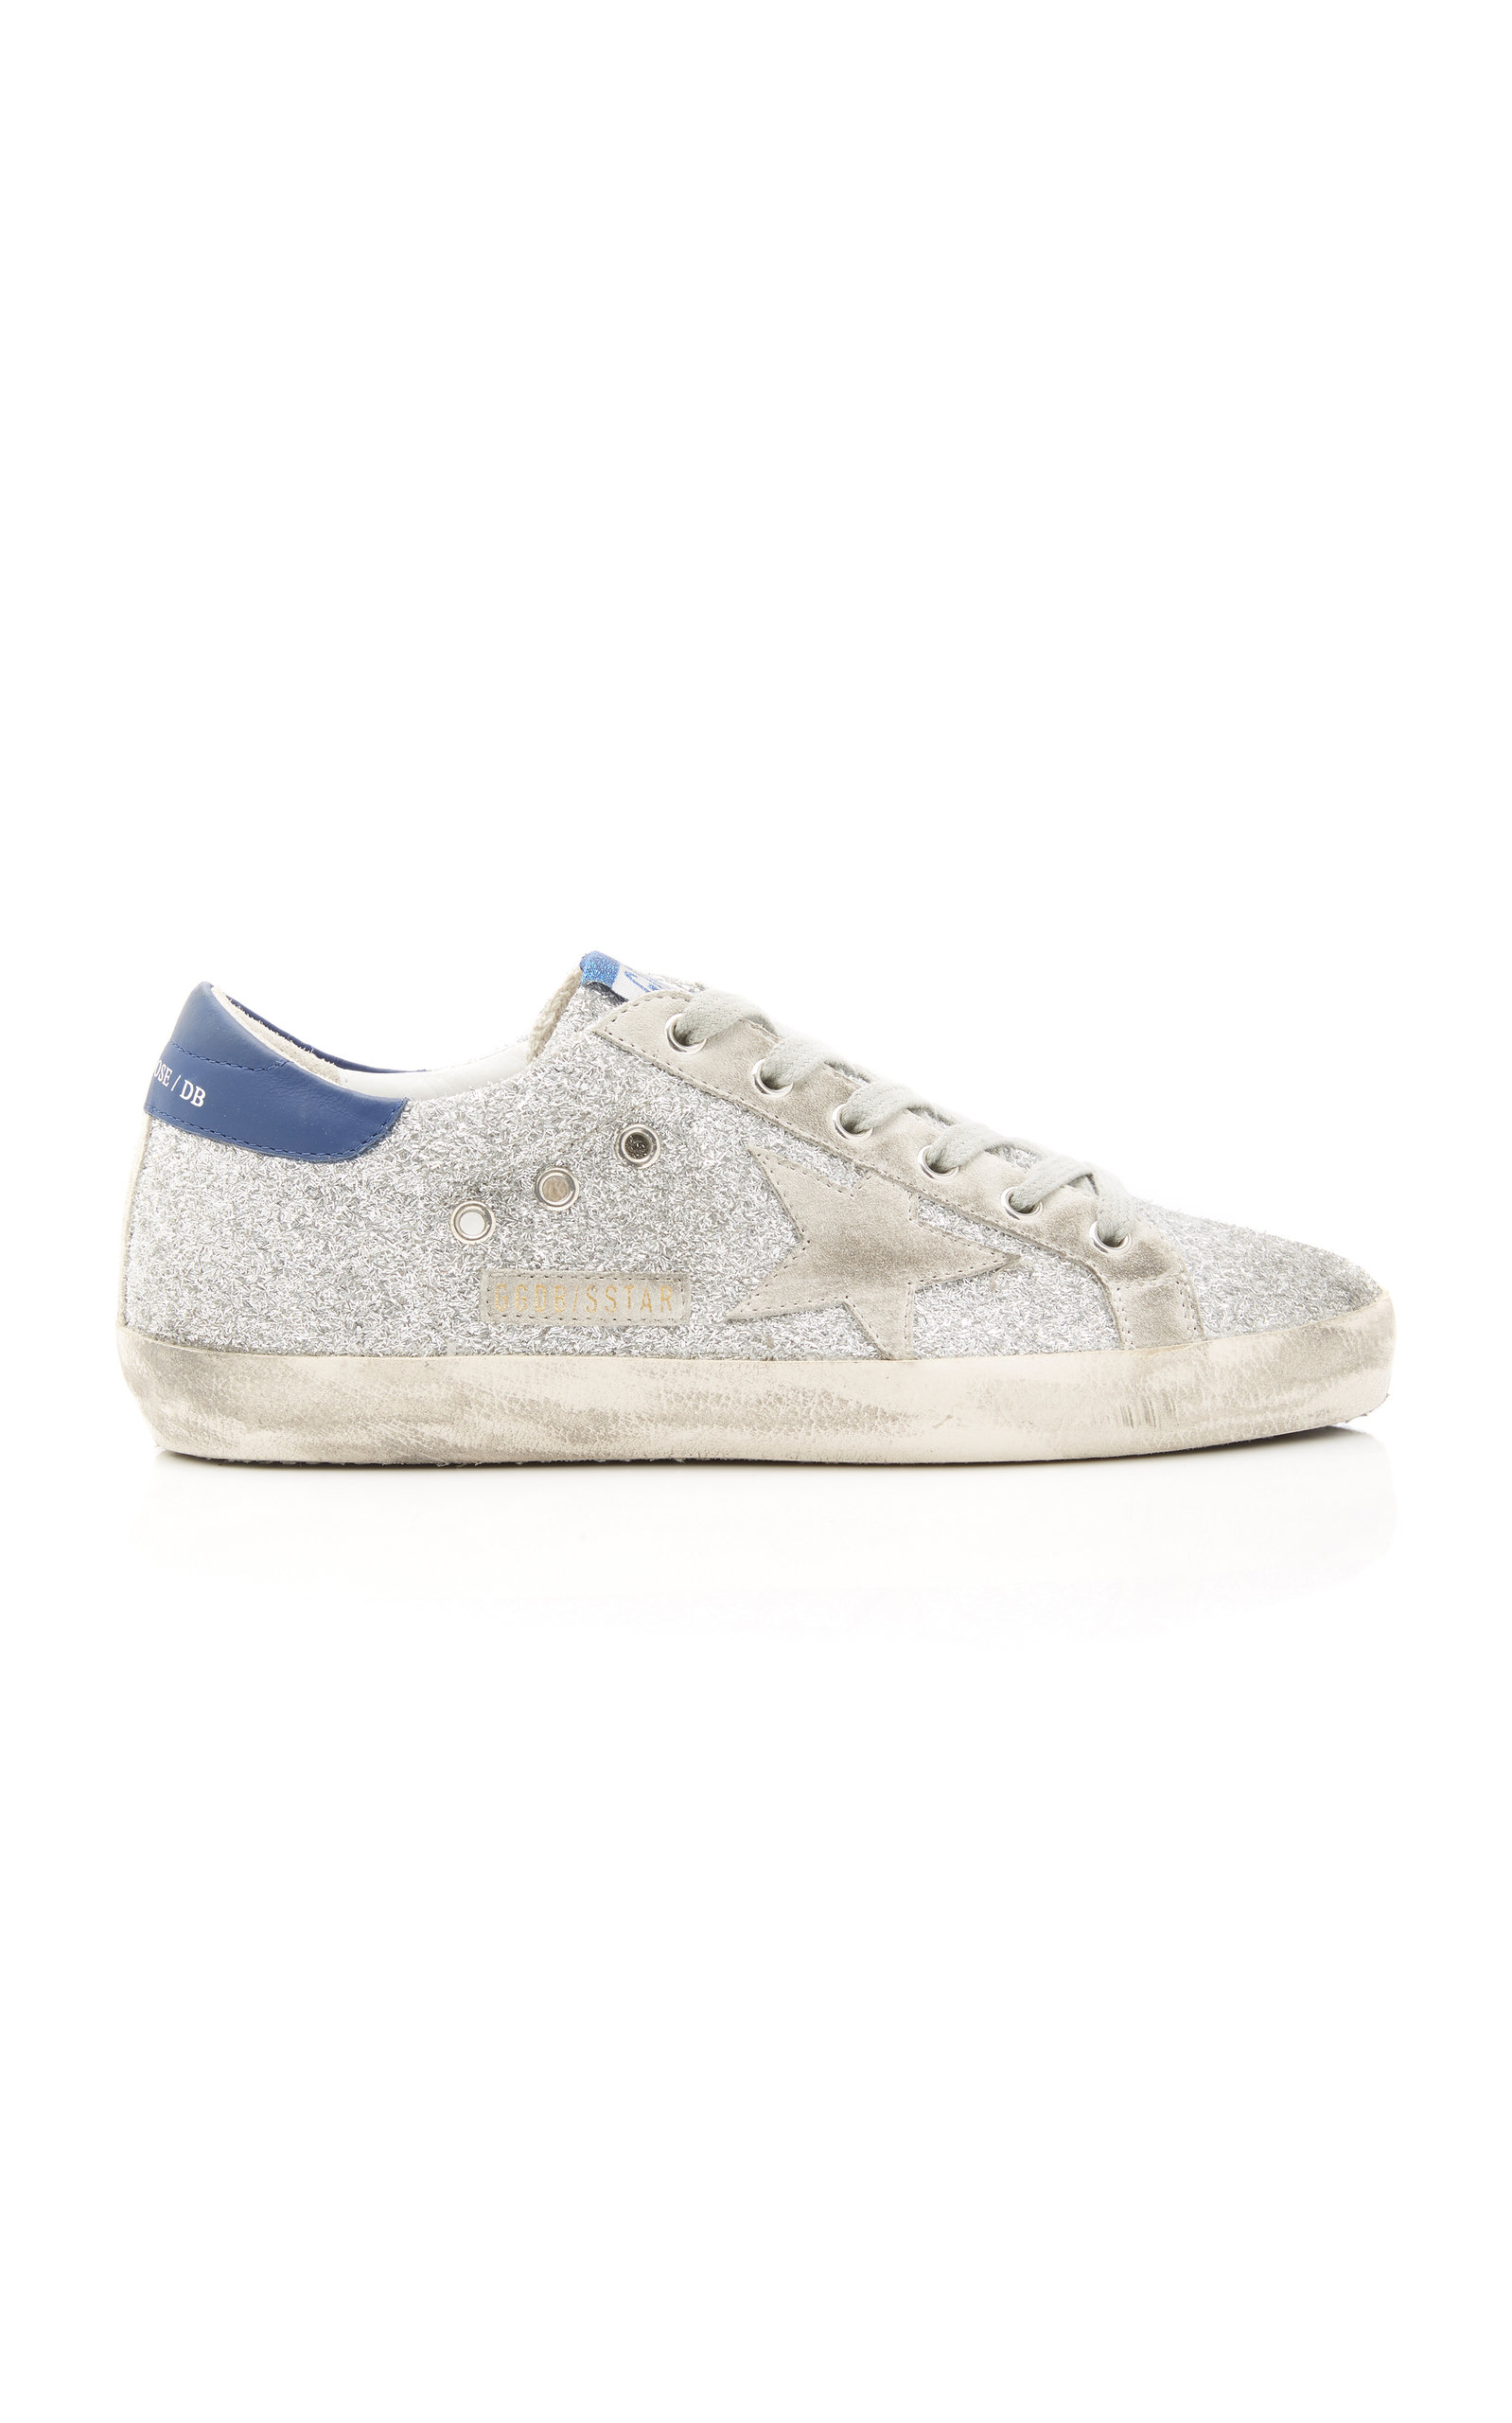 Golden Goose - Women's Superstar Glittered Distressed Leather And Suede Sneakers - Silver - Moda Operandi